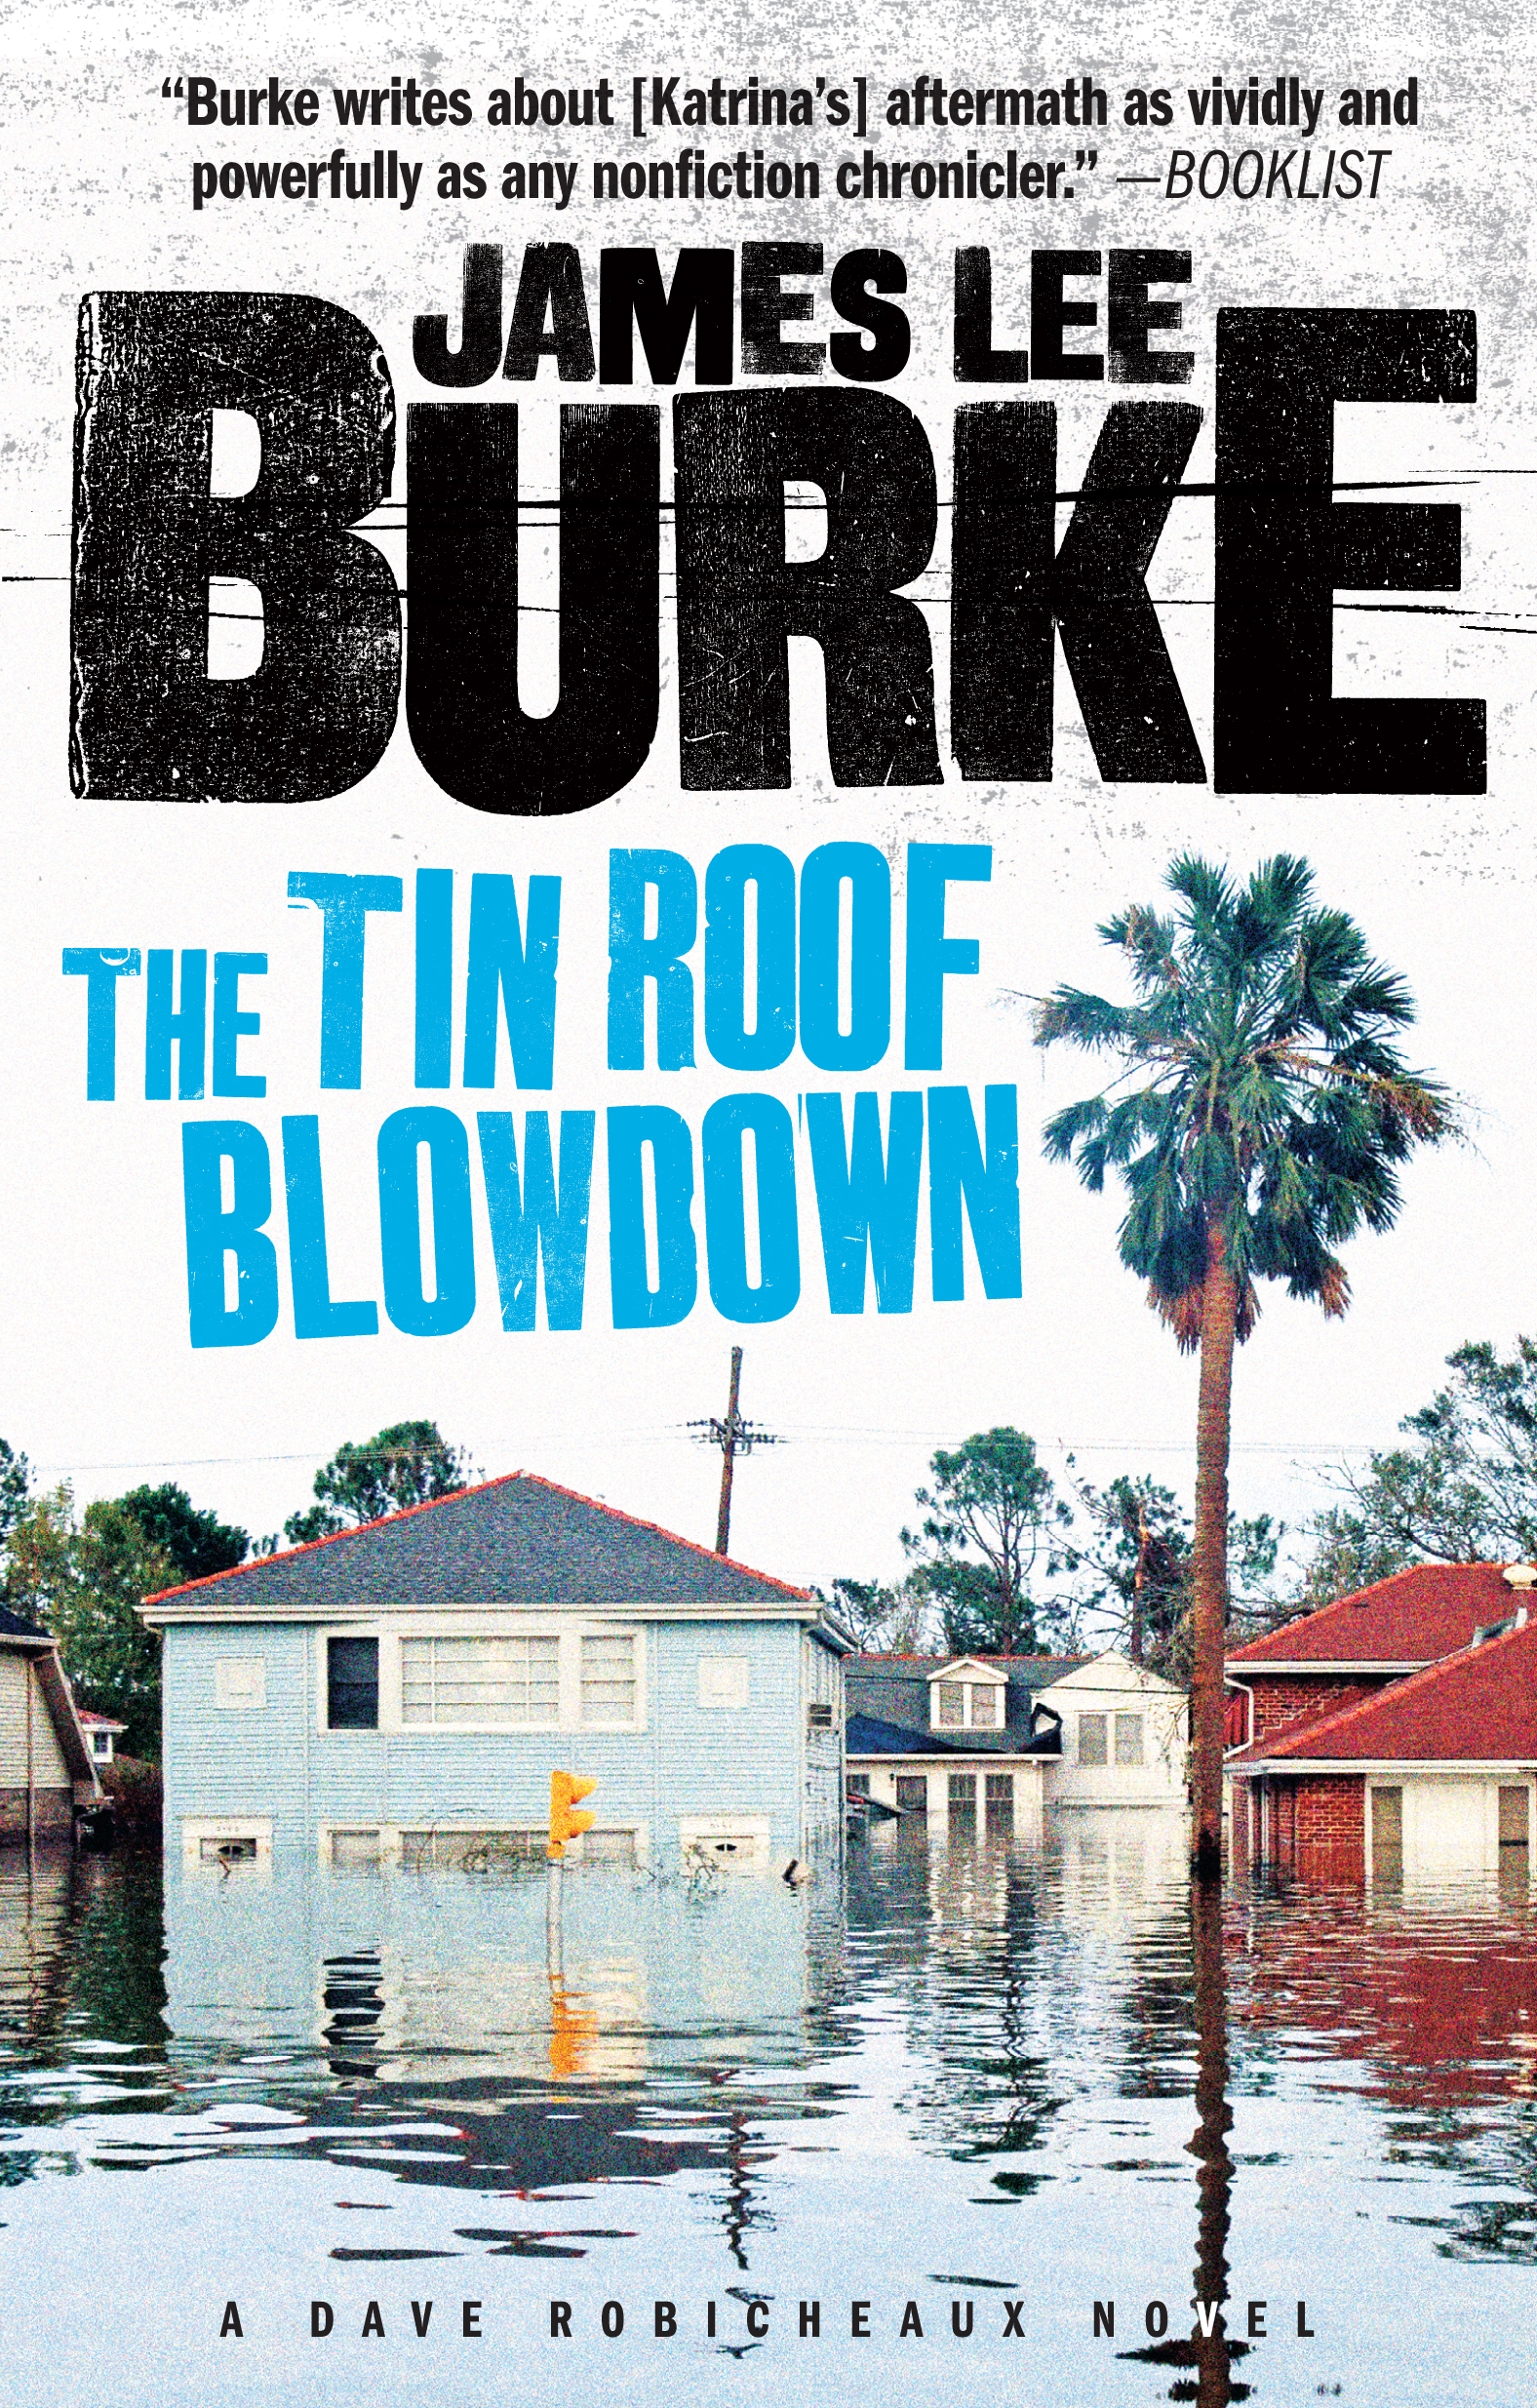 Book Cover Image (jpg): The Tin Roof Blowdown